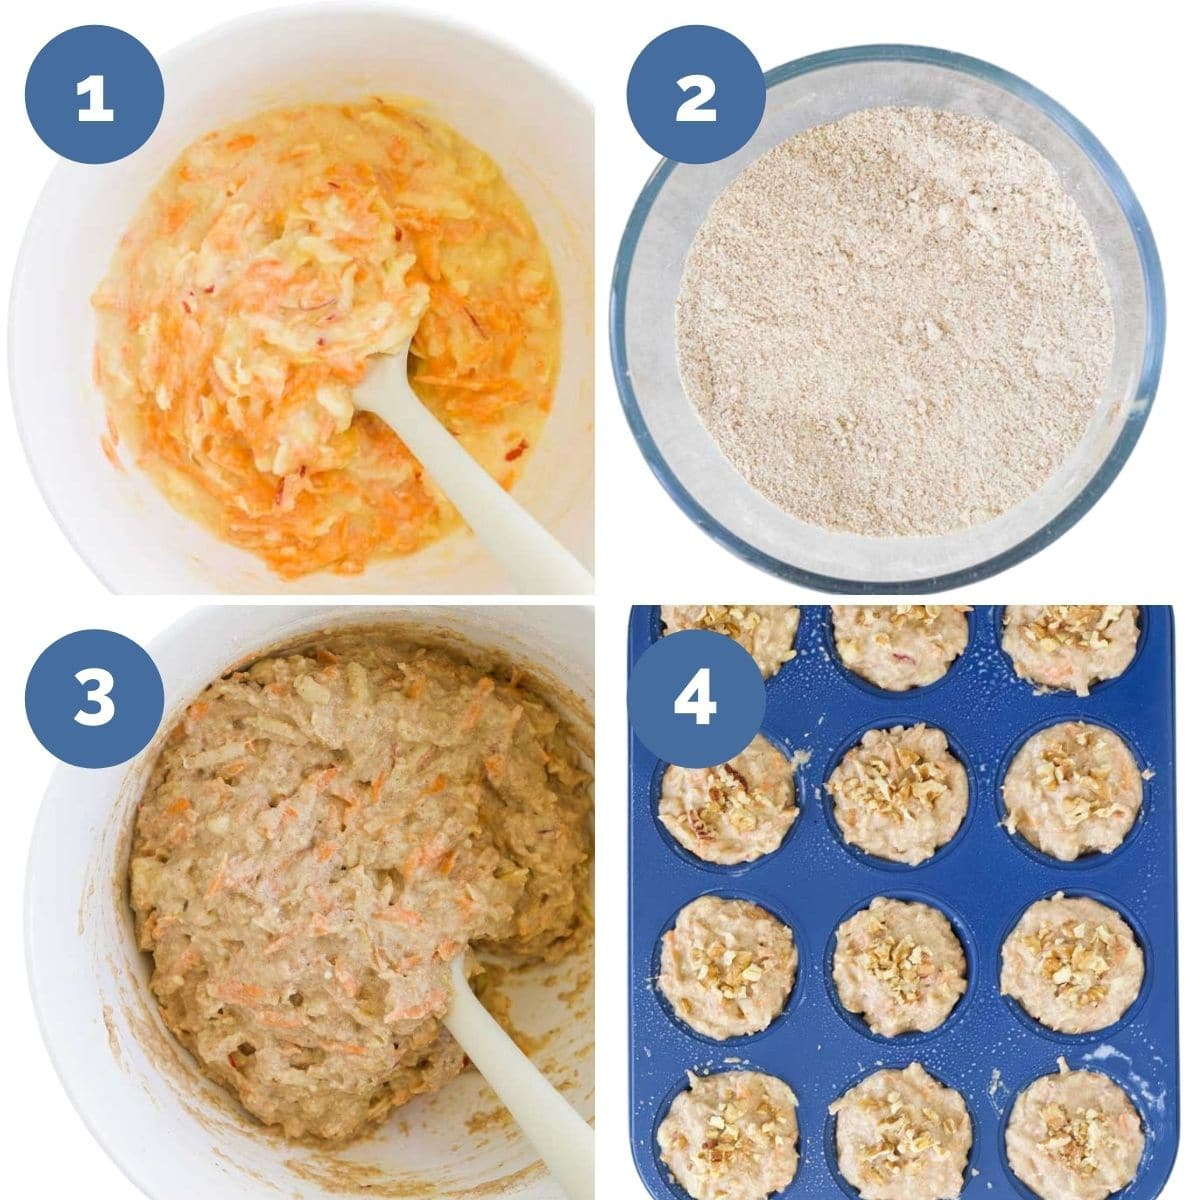 Collage of 4 Images Showing Process Steps for Making Carrot and Apple Muffins